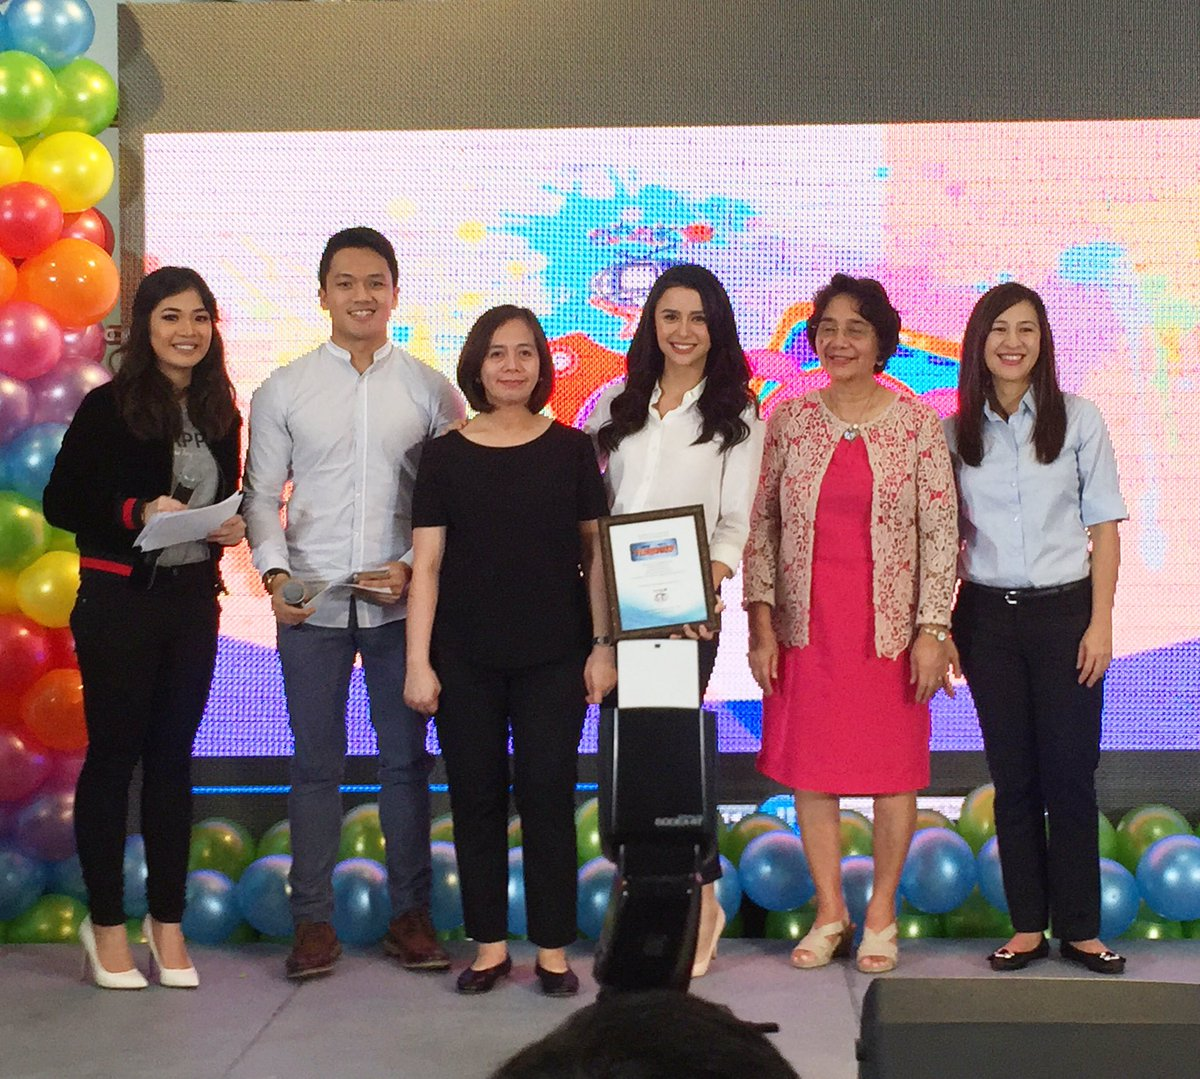 dreamscape on twitter ms dagang vilbar production manager of fpjsangprobinsyano and yassizzle received the award at the anak tv awards - Fashion Production Manager